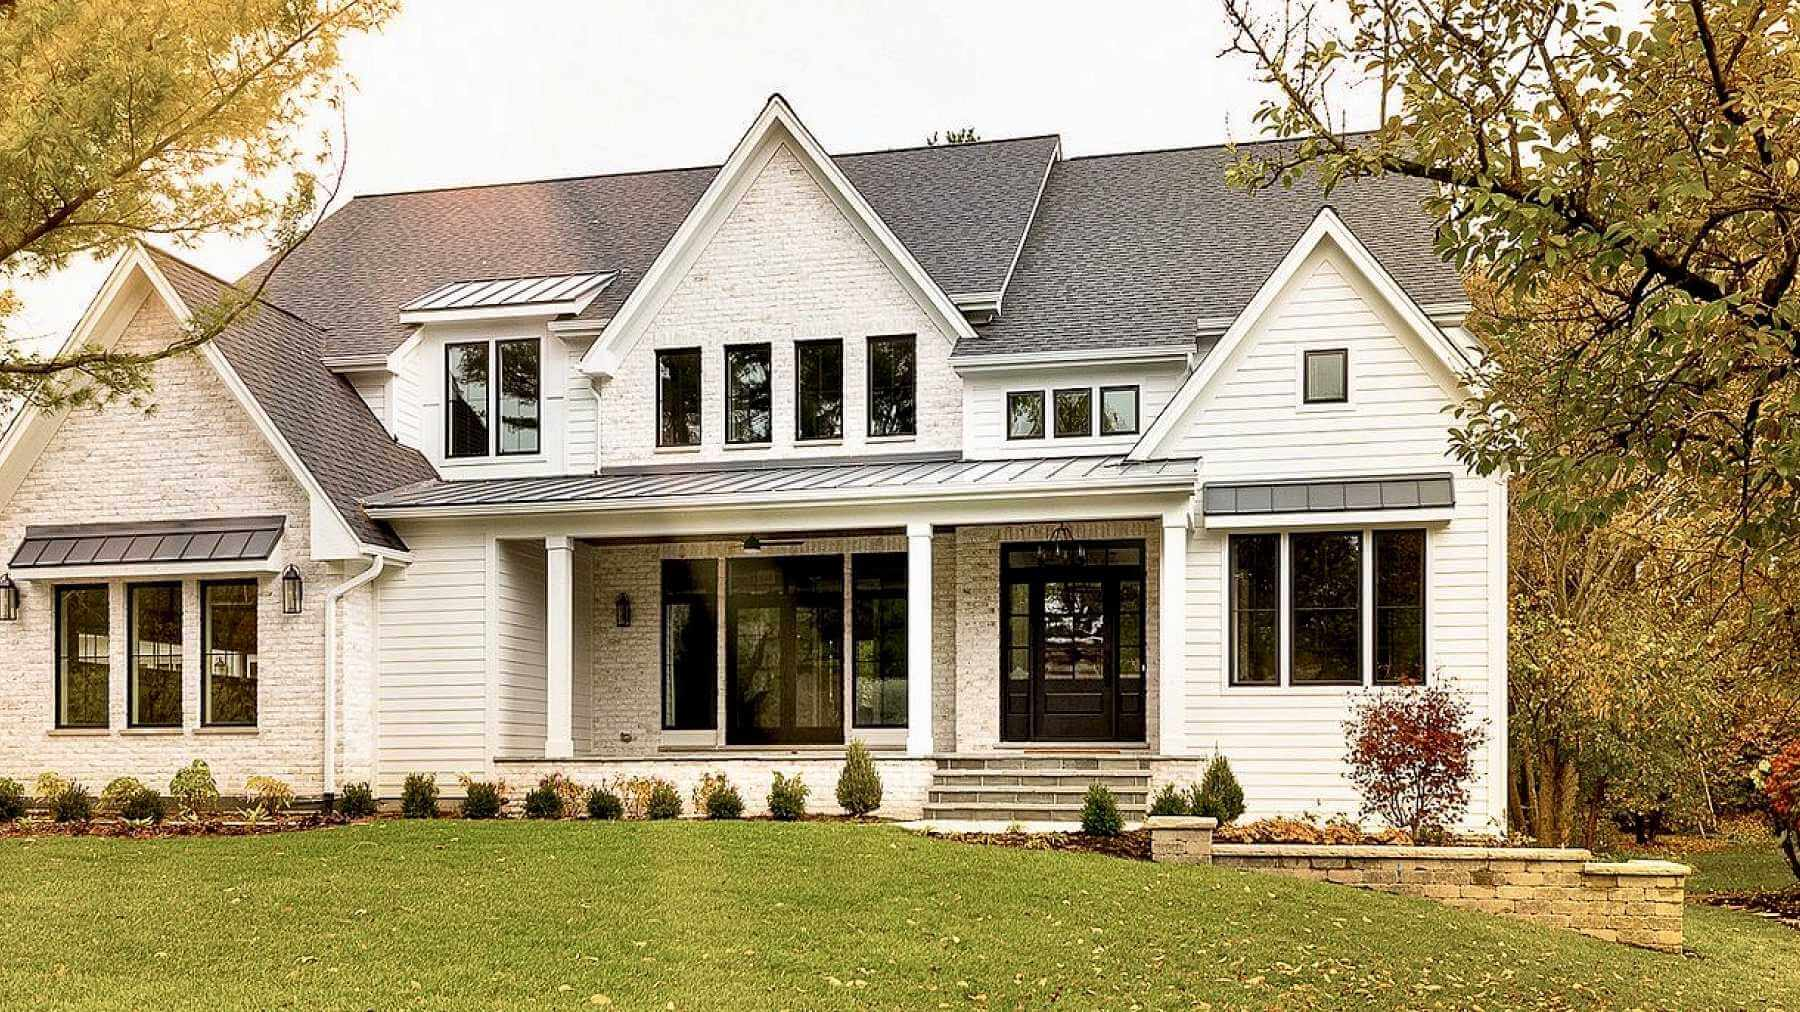 Exterior White Siding and Brick with Black Doors and Windows in 2936 Black Emerald by Sherwin Will